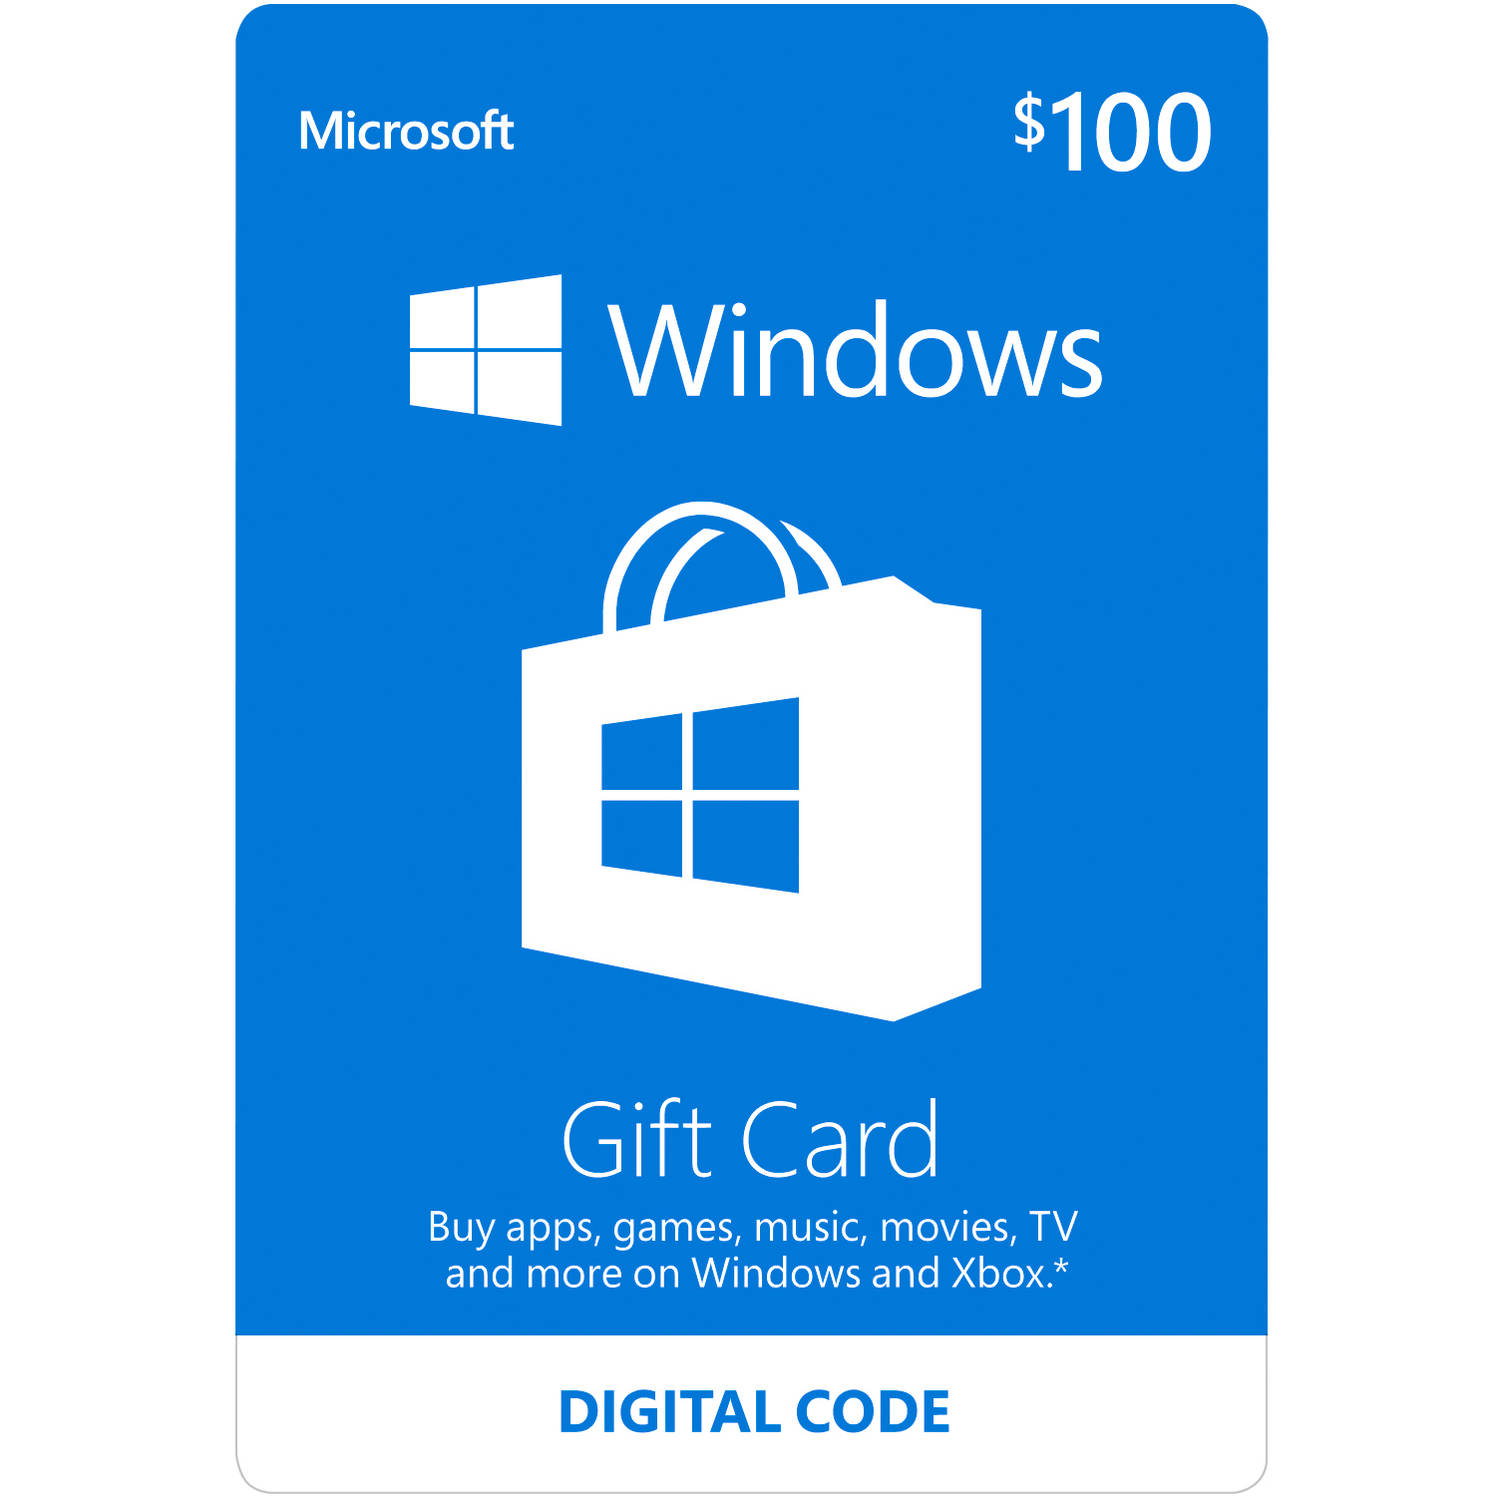 Microsoft Windows Store Gift Card $100 (Digital Code)